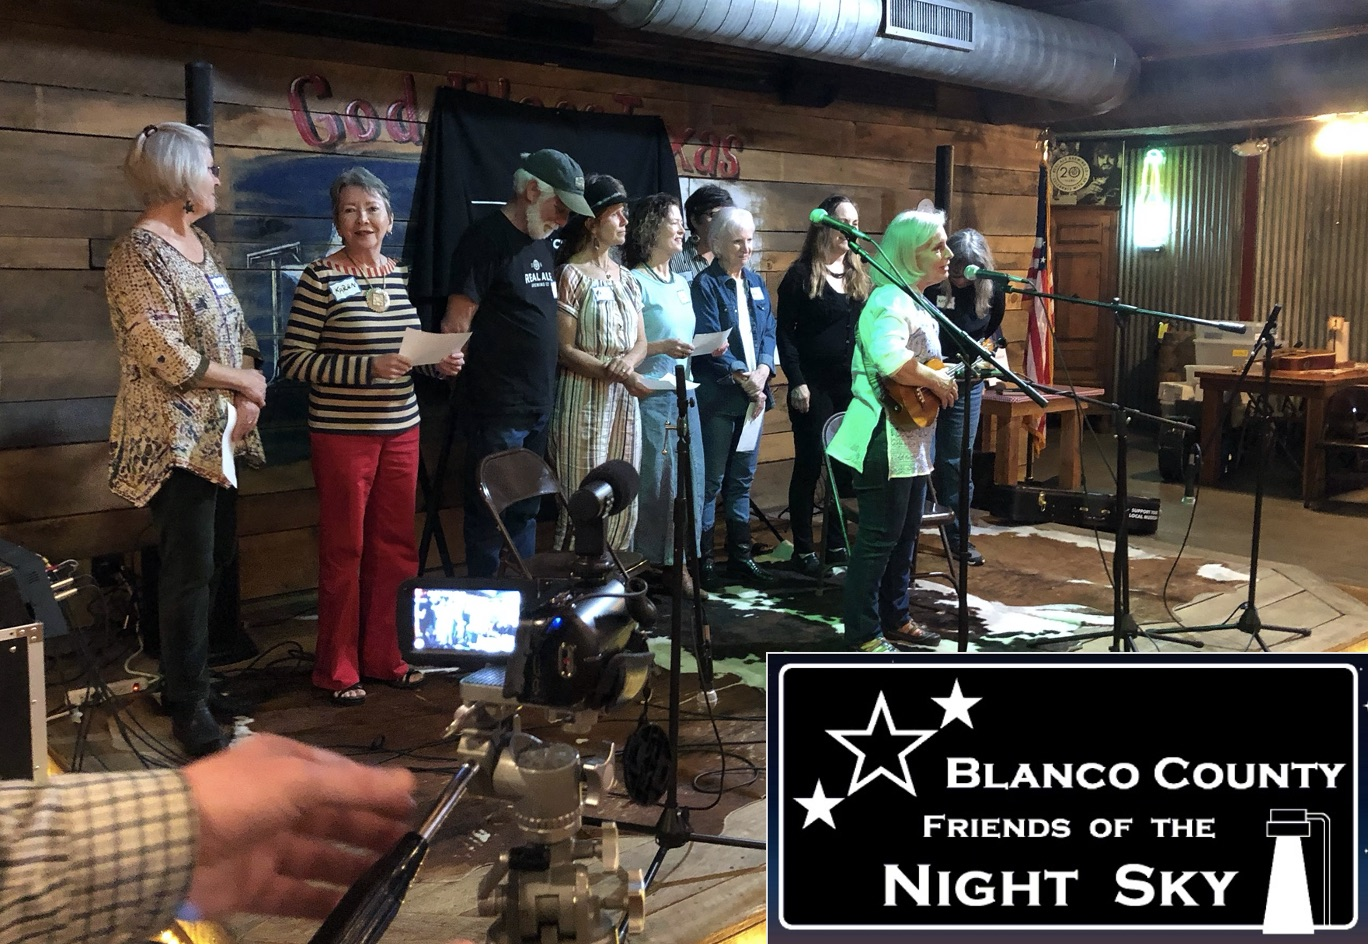 Blanco County's Night Skies Celebrated In Song